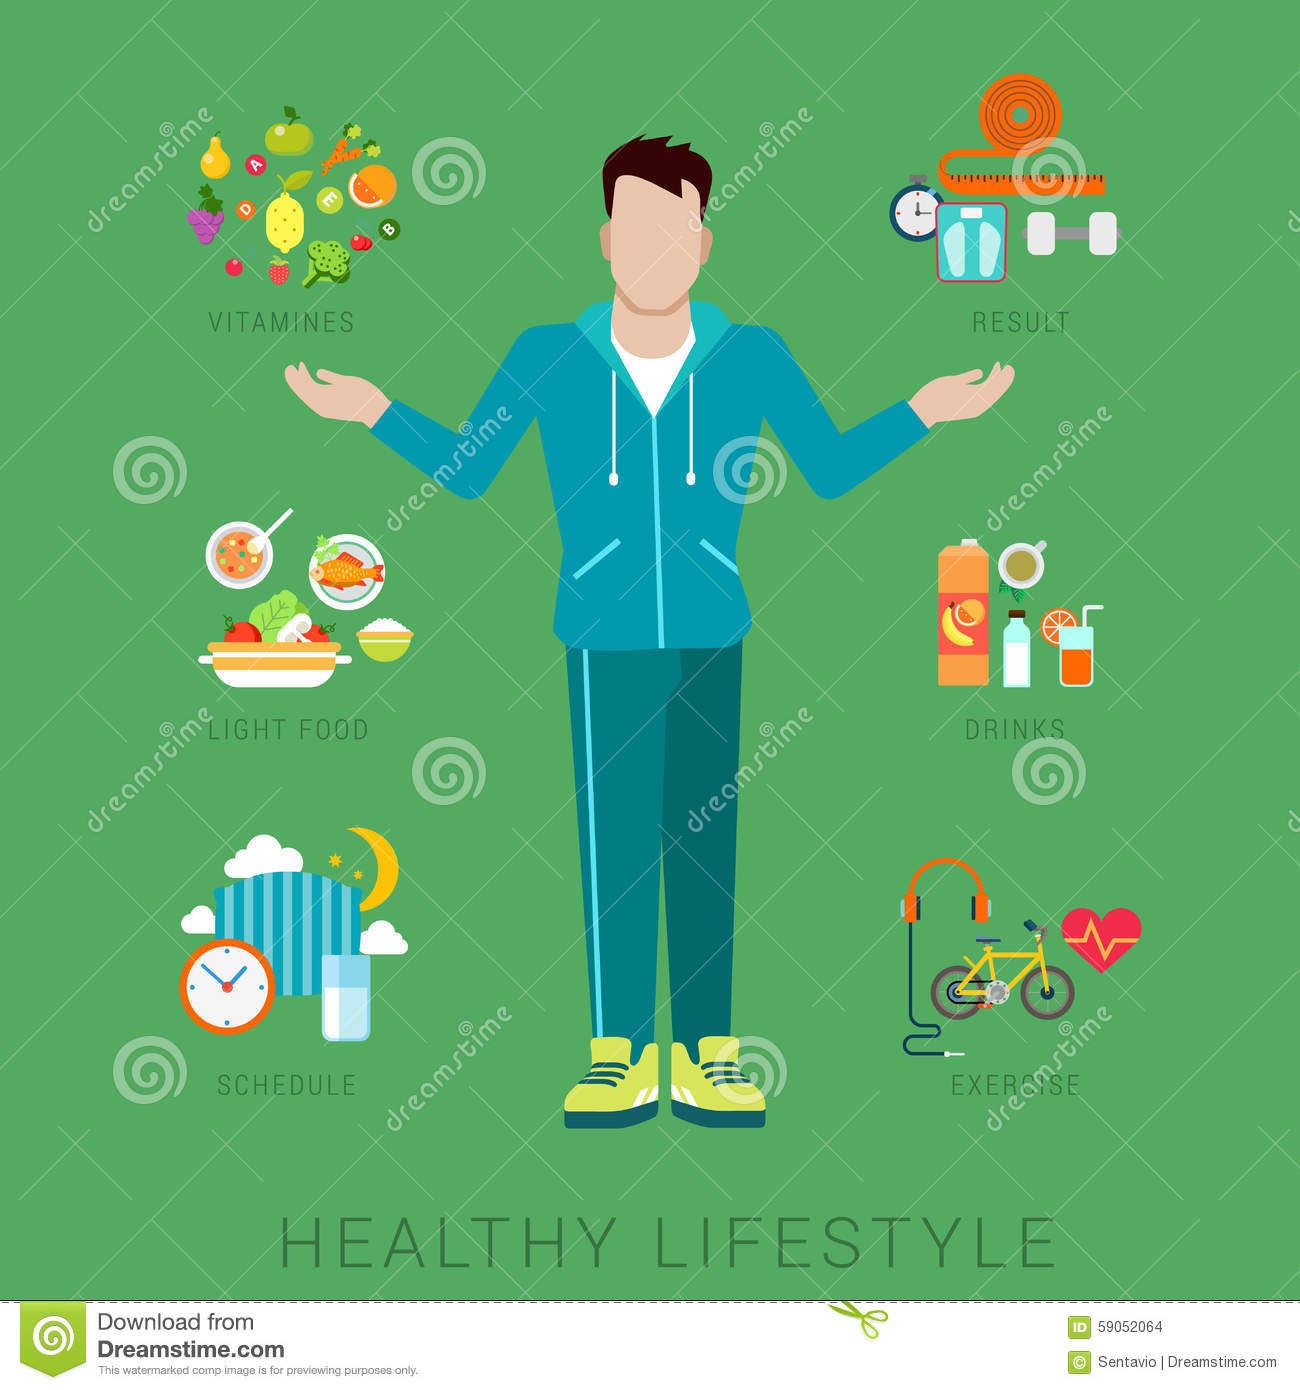 concept of healthy life style Health is more than the absence of disease it is a resource that allows people to realize their aspirations, satisfy their needs and to cope with the environment in order to live a long, productive, and fruitful life 25, 29-31 in this sense, health enables social, economic and personal development fundamental to well-being 25, 30, 31 health.